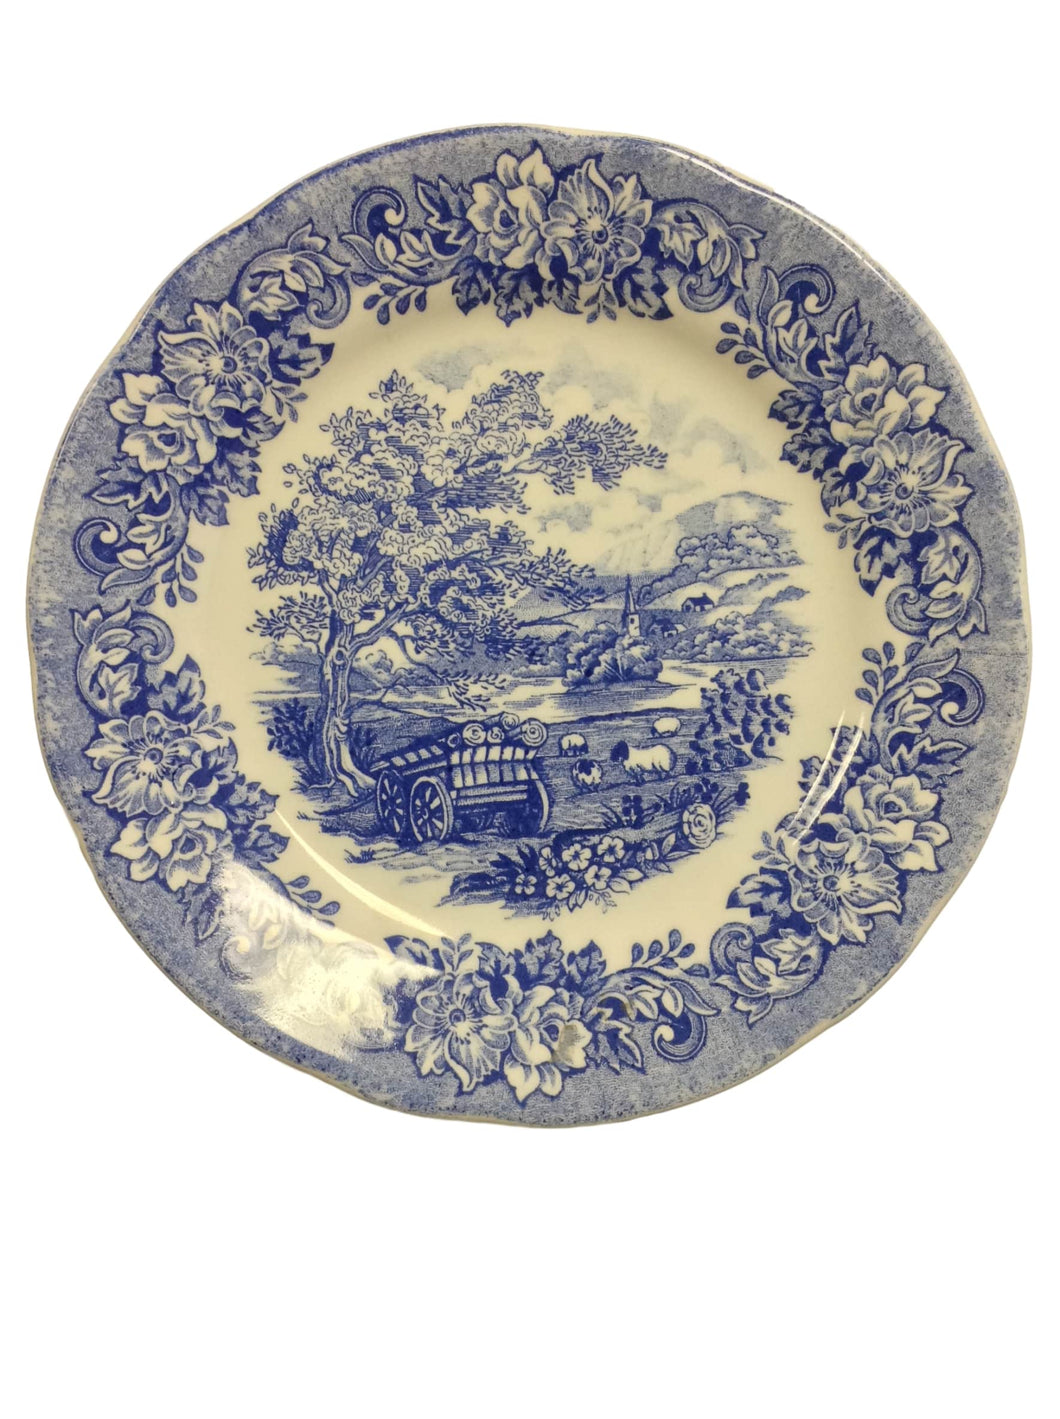 Unglazed Collectable Plate